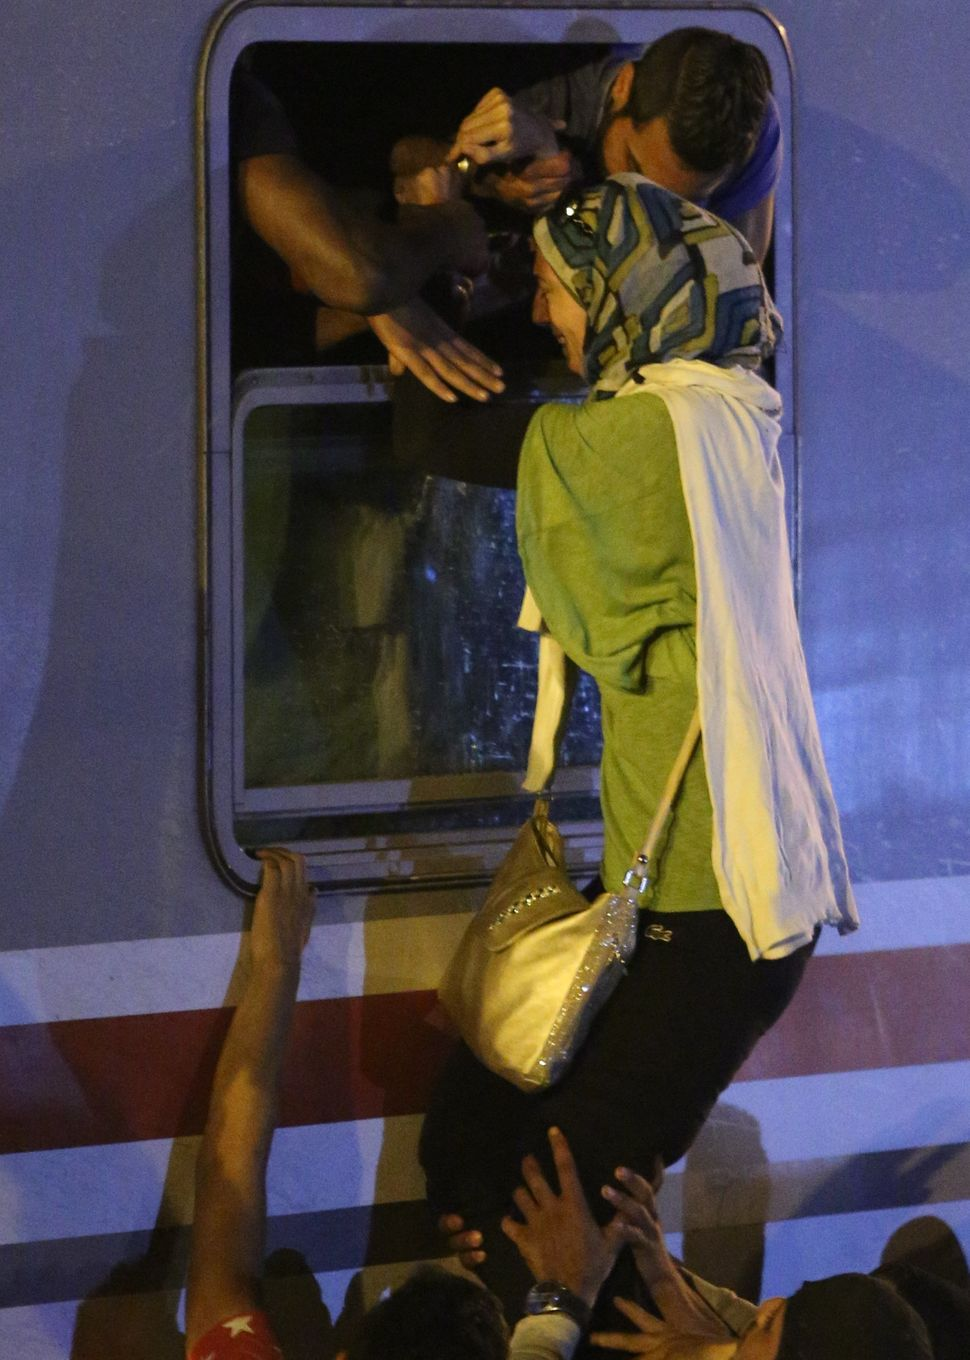 A stampede occurs as Middle Eastern refugees rush to find space on a train headed to Beli Manastir on September 18, 2015 in T